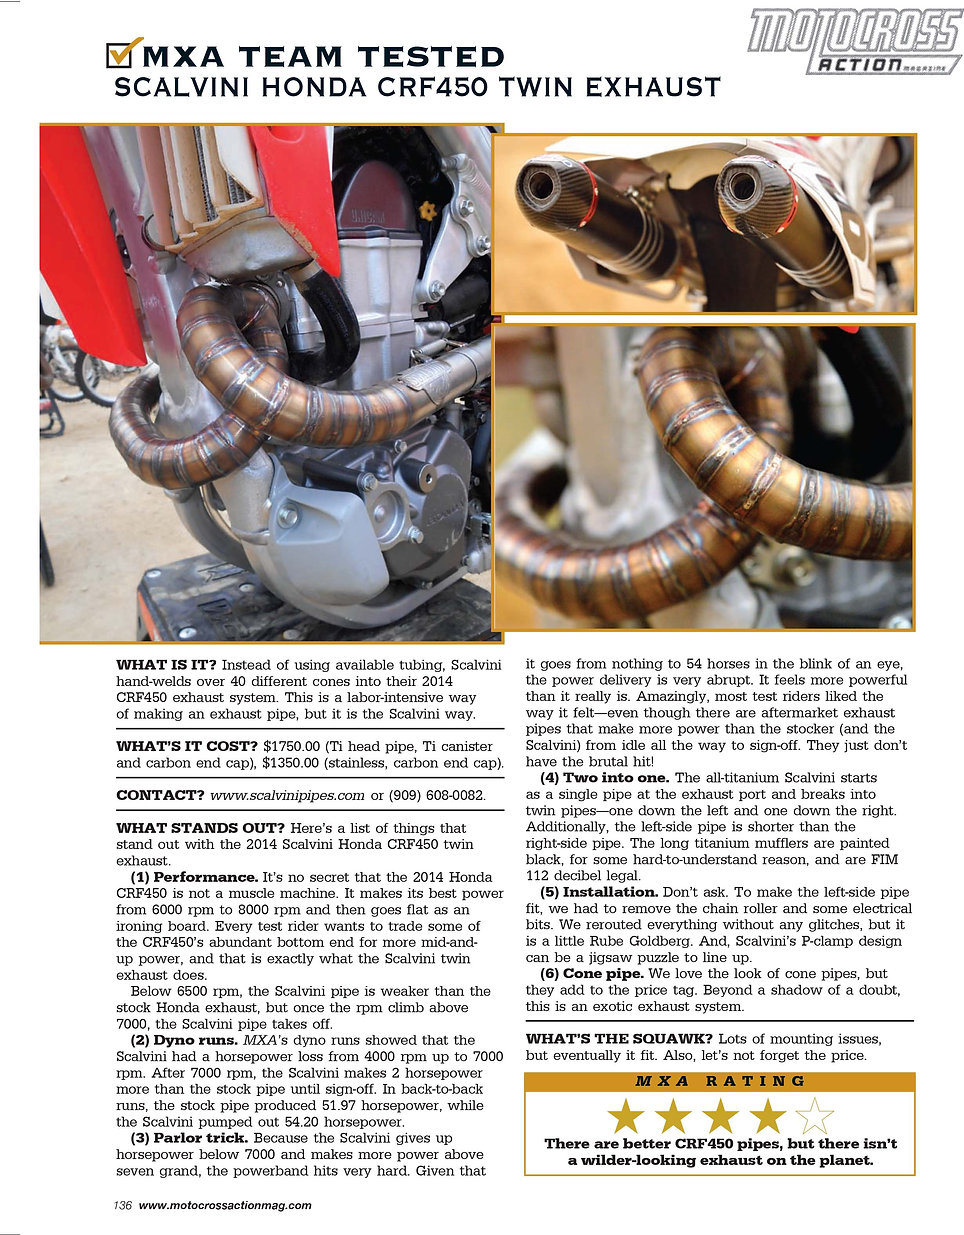 Scalvini Pipe for Honda CRF 450 MXA Magazine Test August 2014